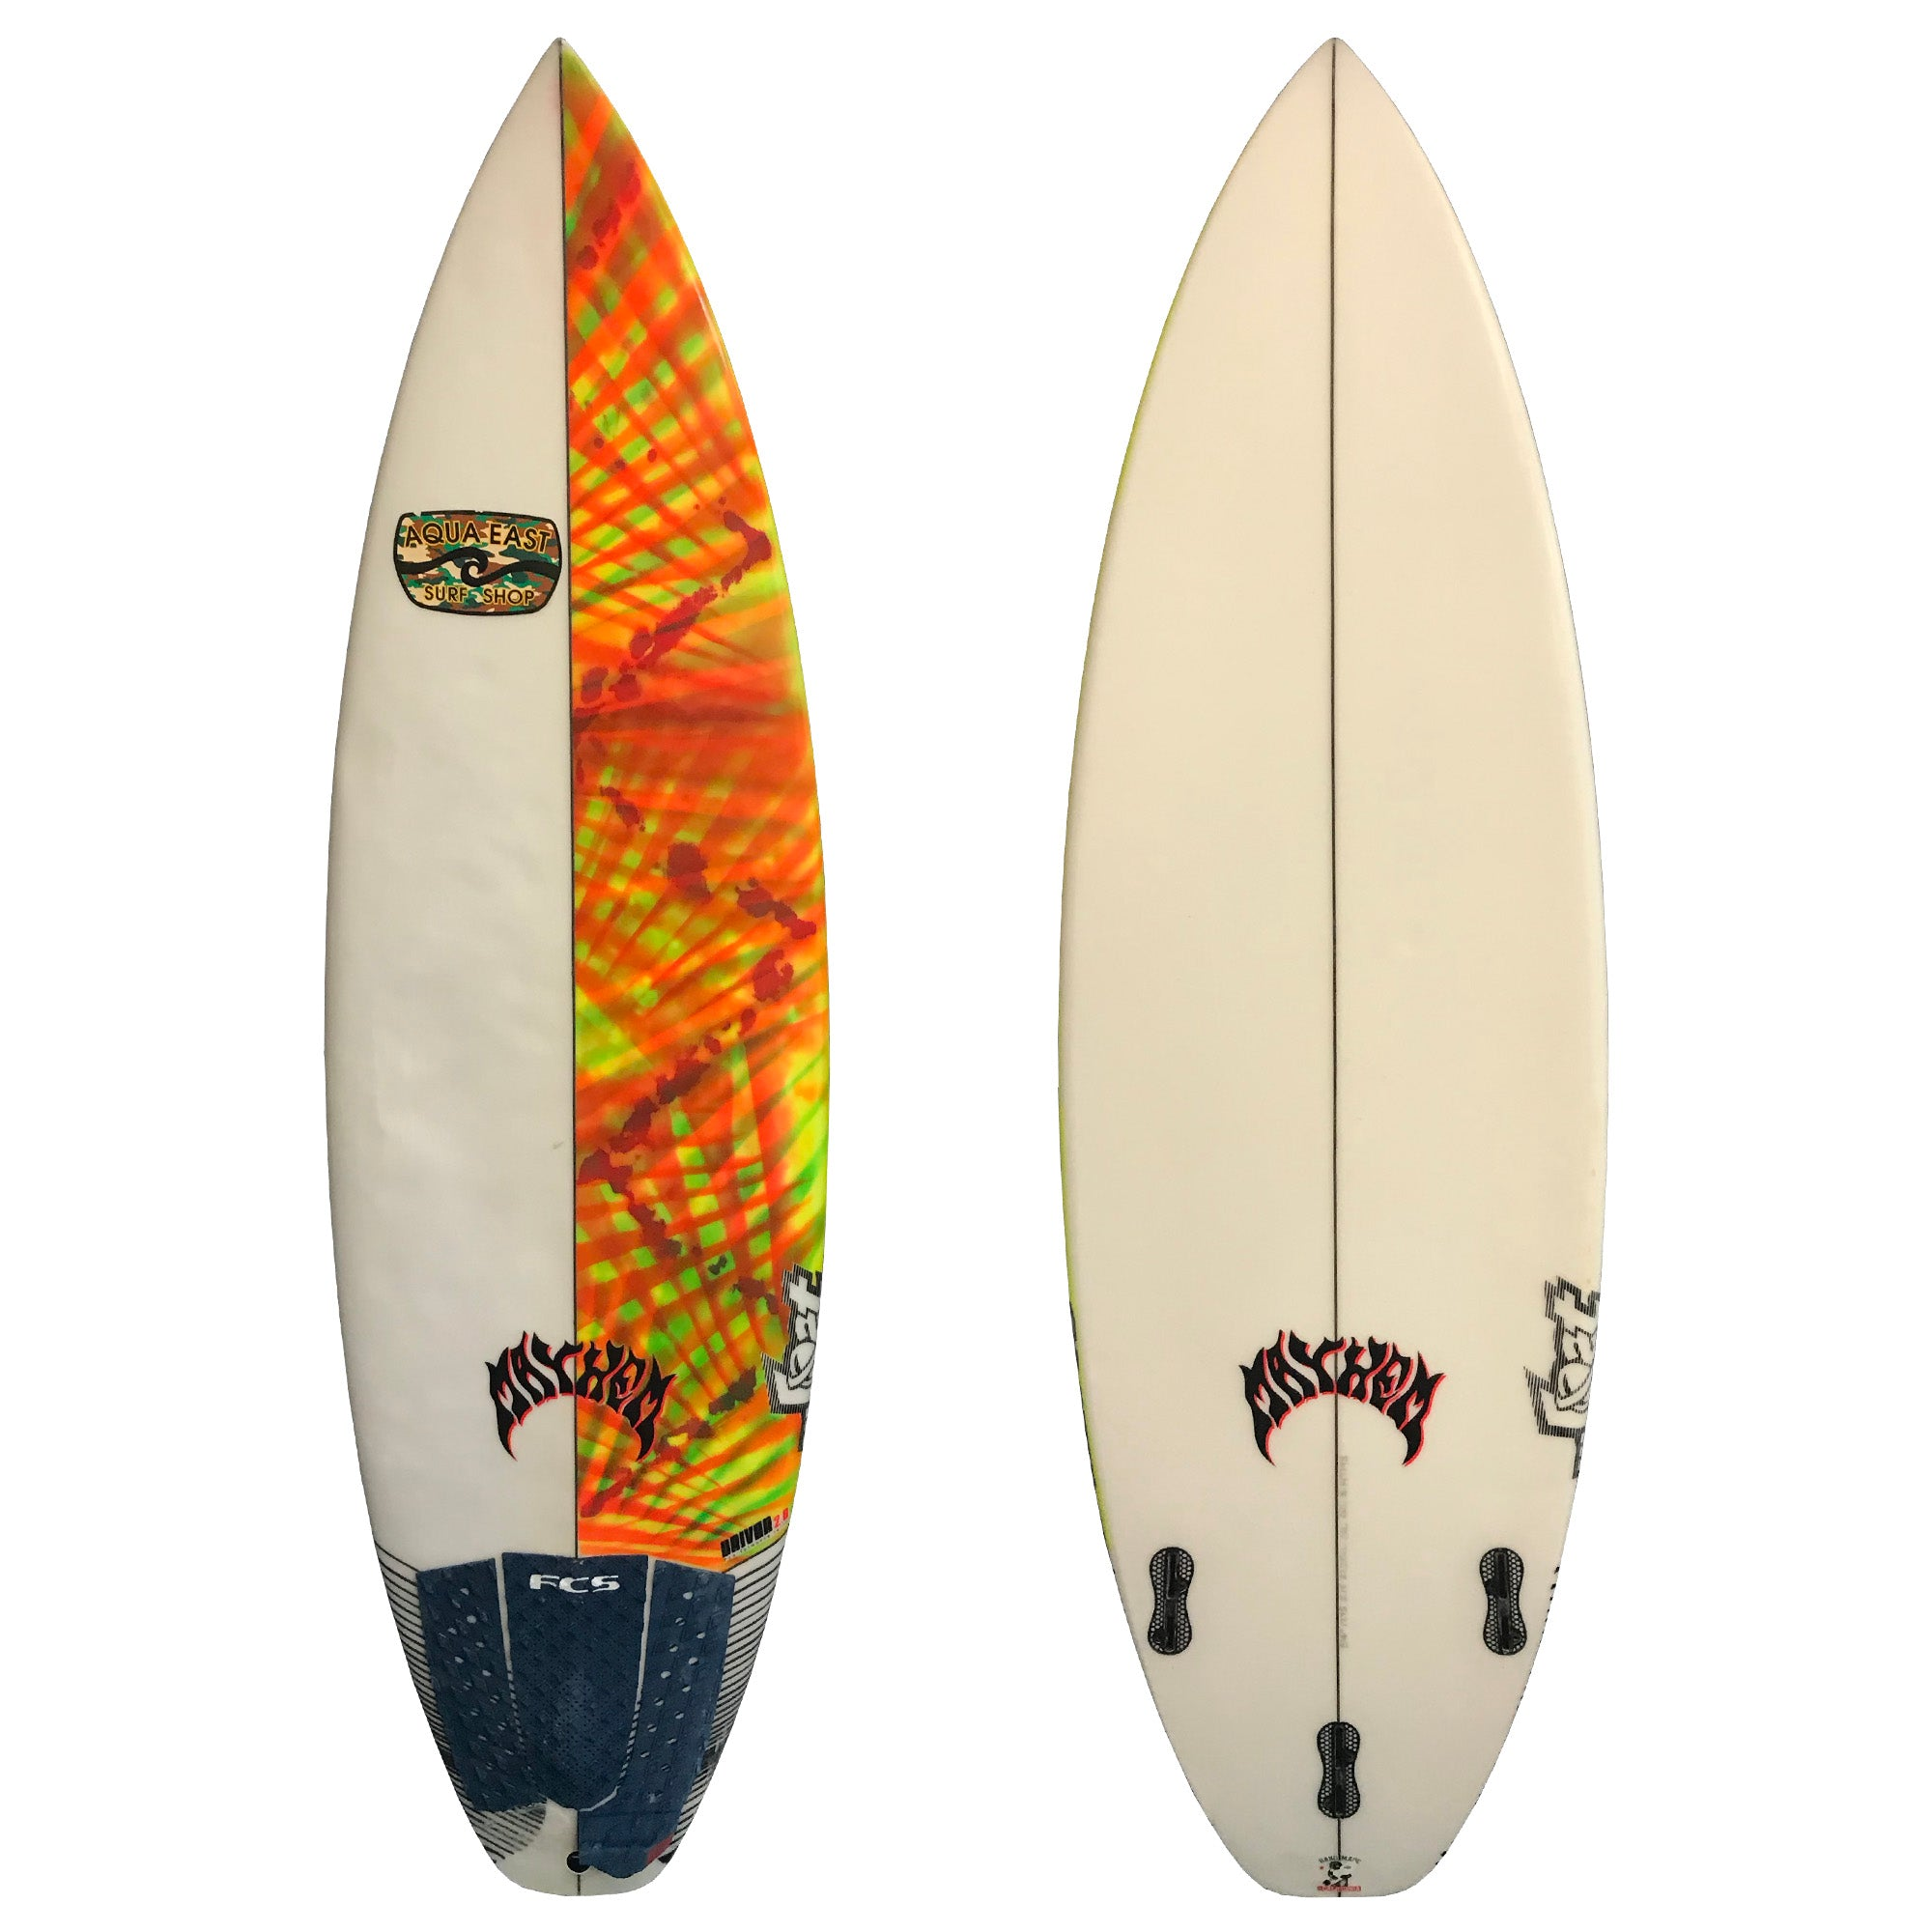 Lost Driver 2.0 5'4 Used Surfboard